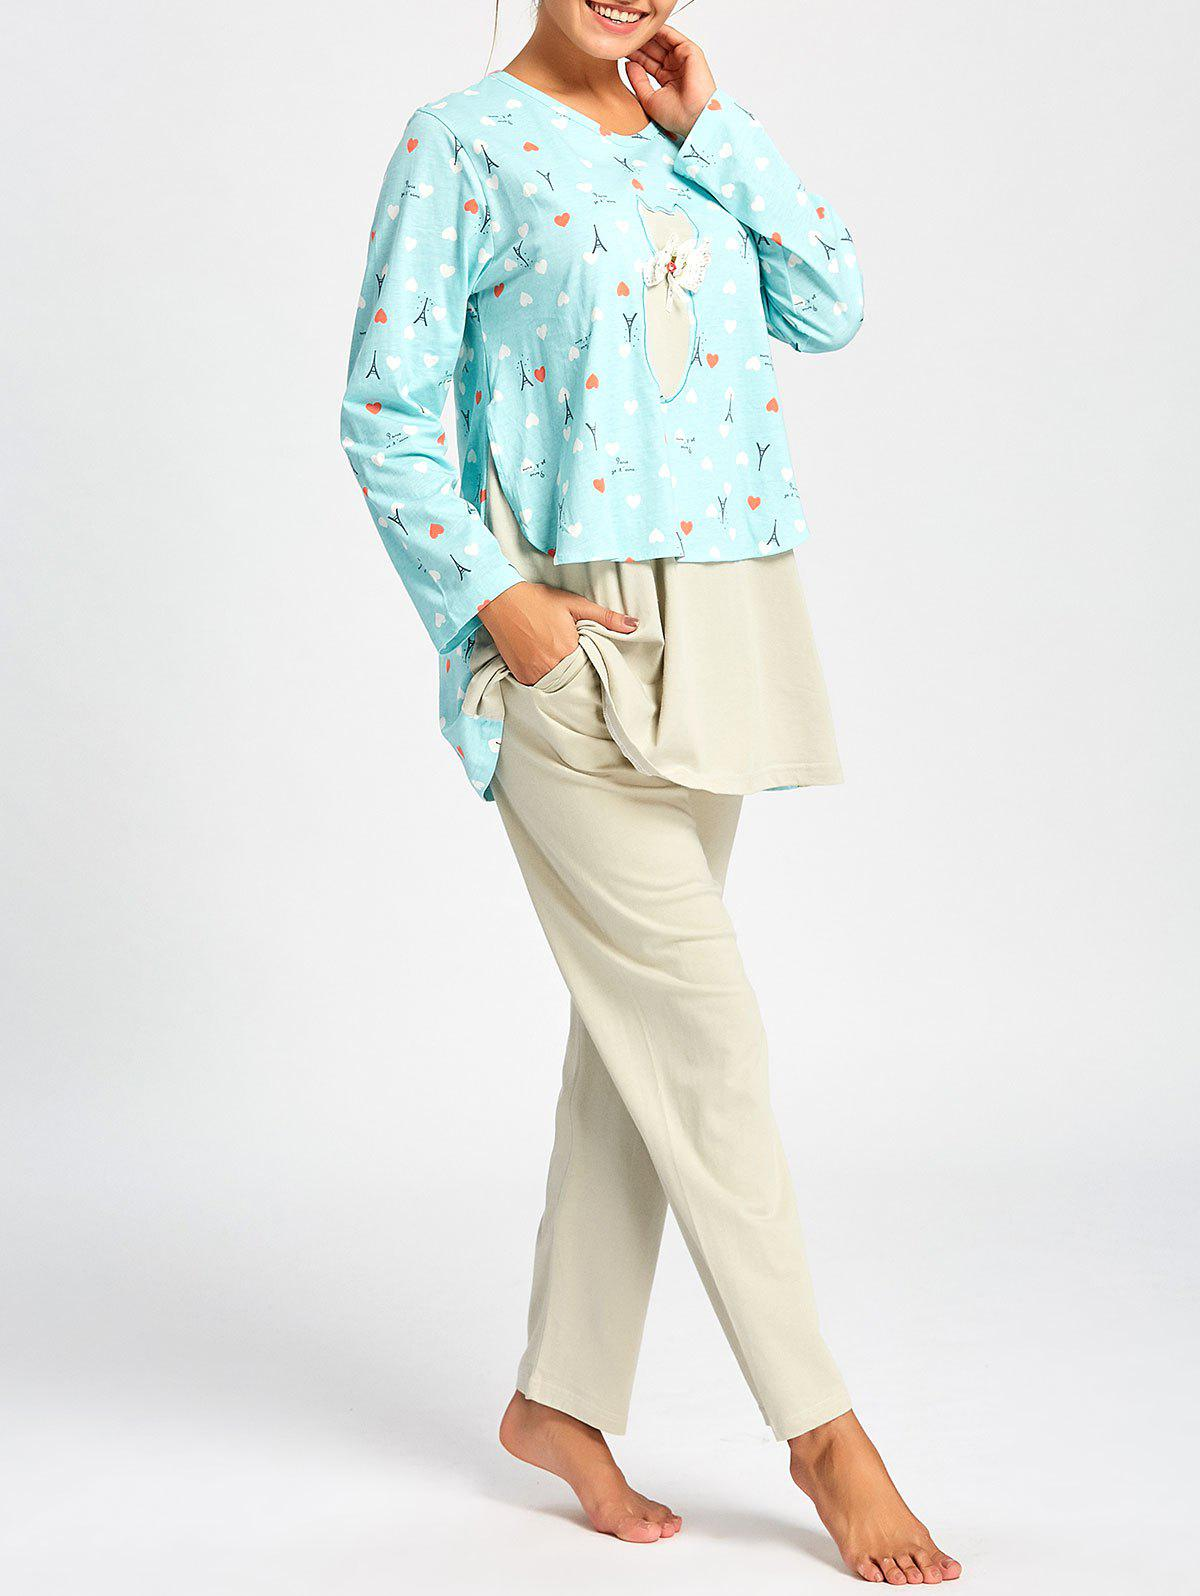 Long Sleeve Nursing PJ Set with Pattern - CLOUDY M